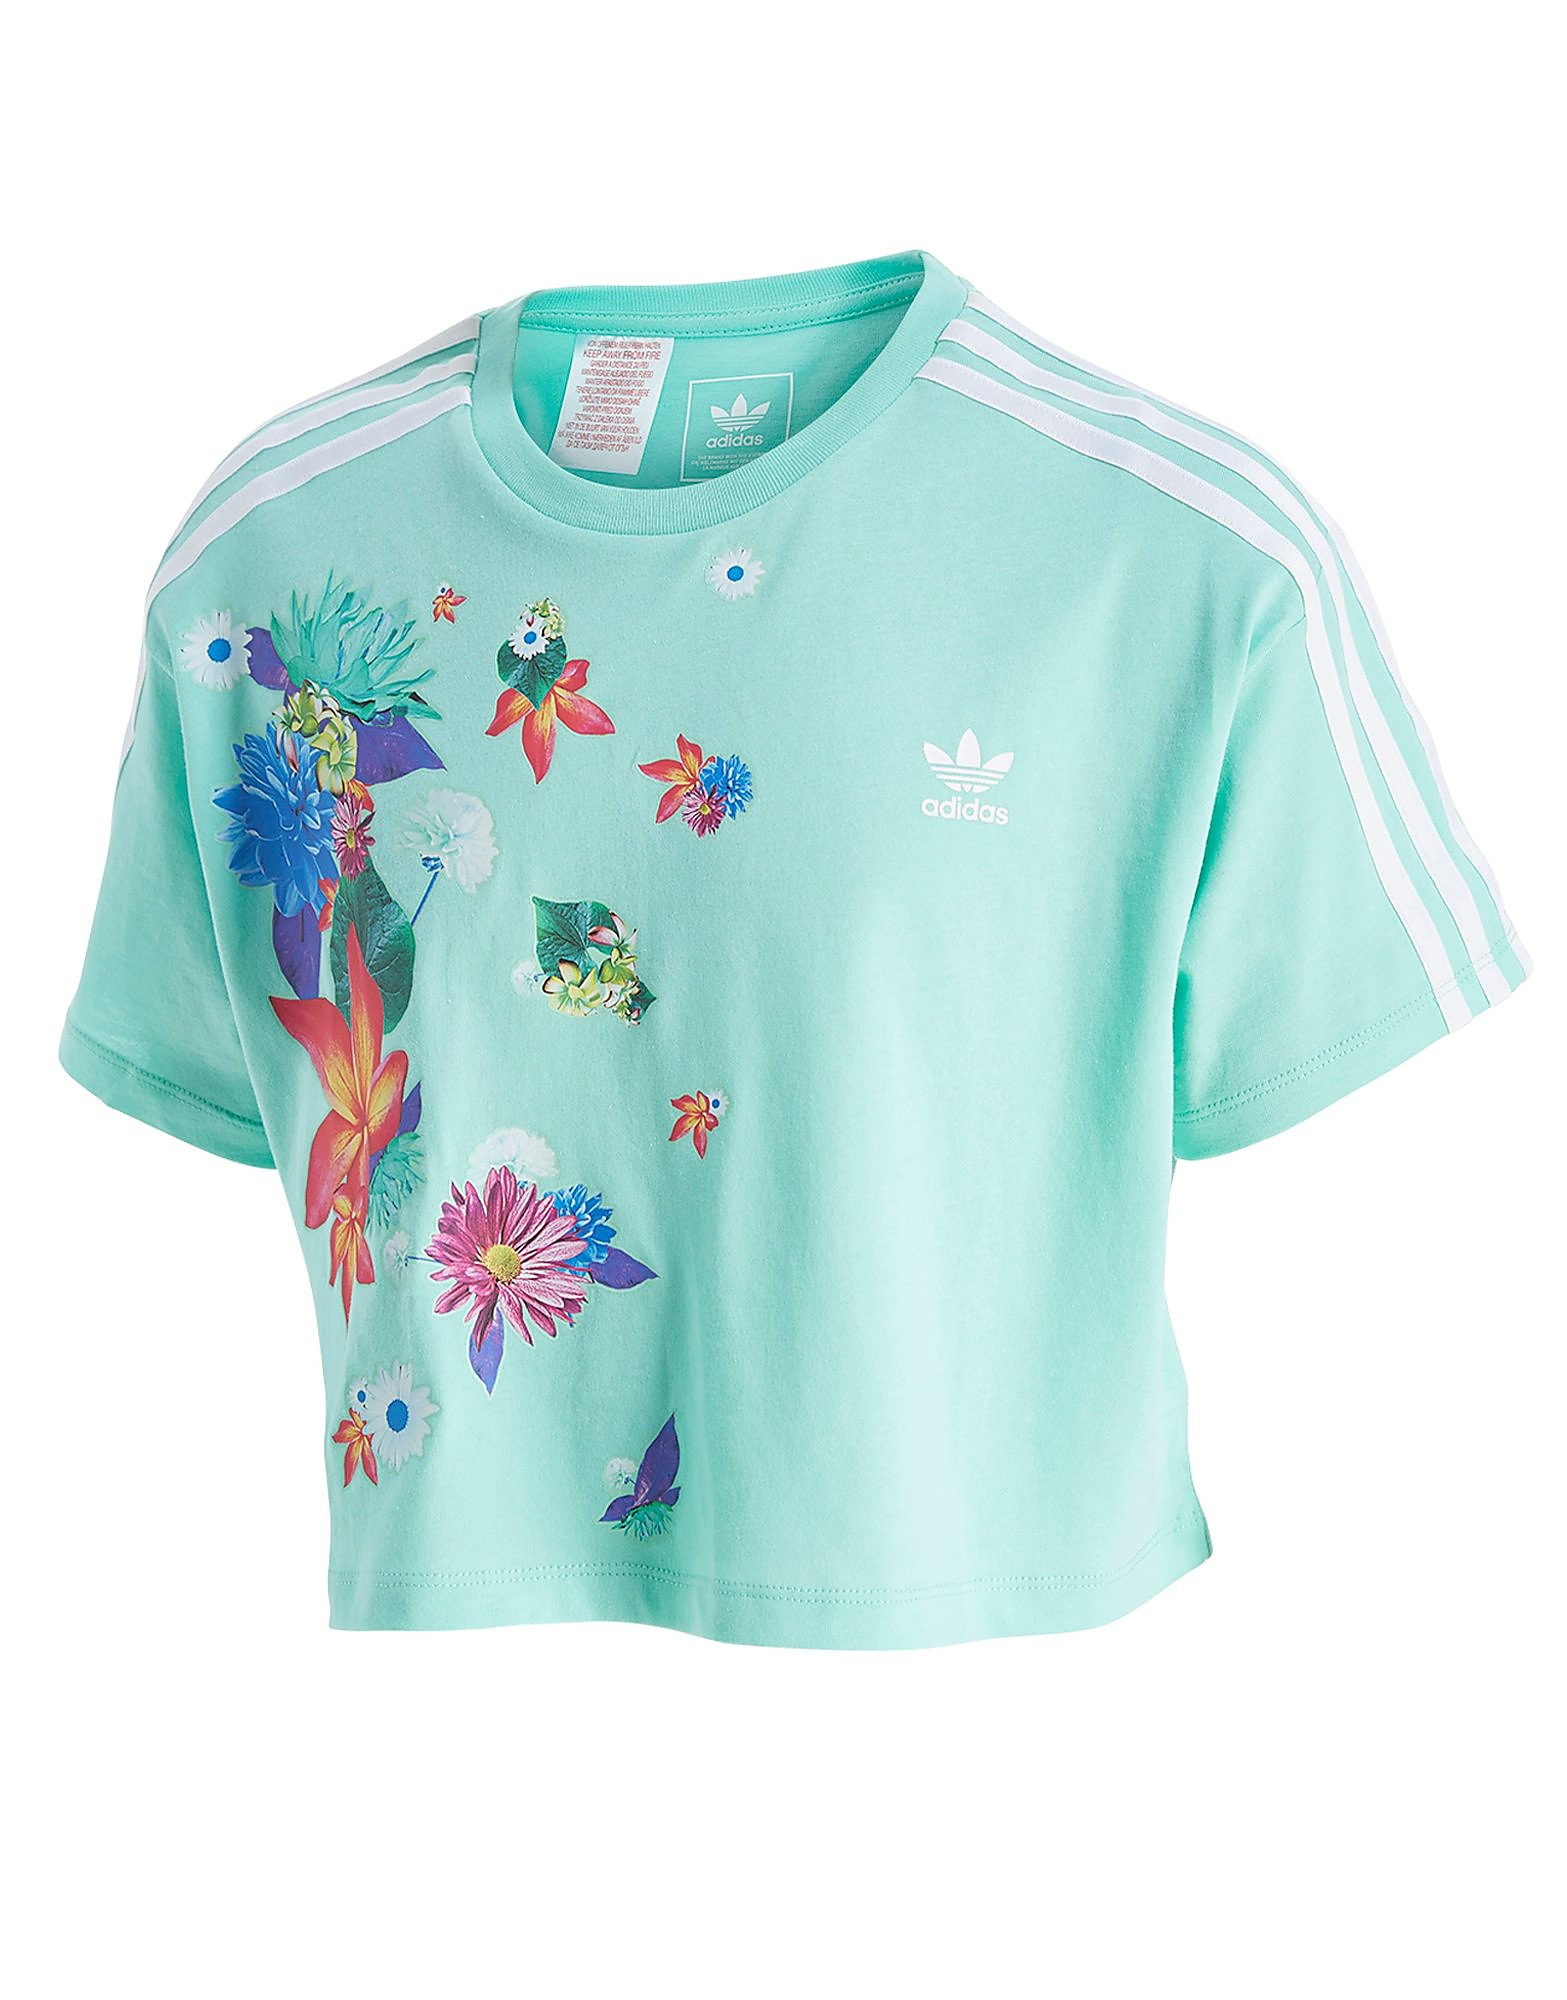 adidas Originals Girls' Floral Crop T-Shirt Junior